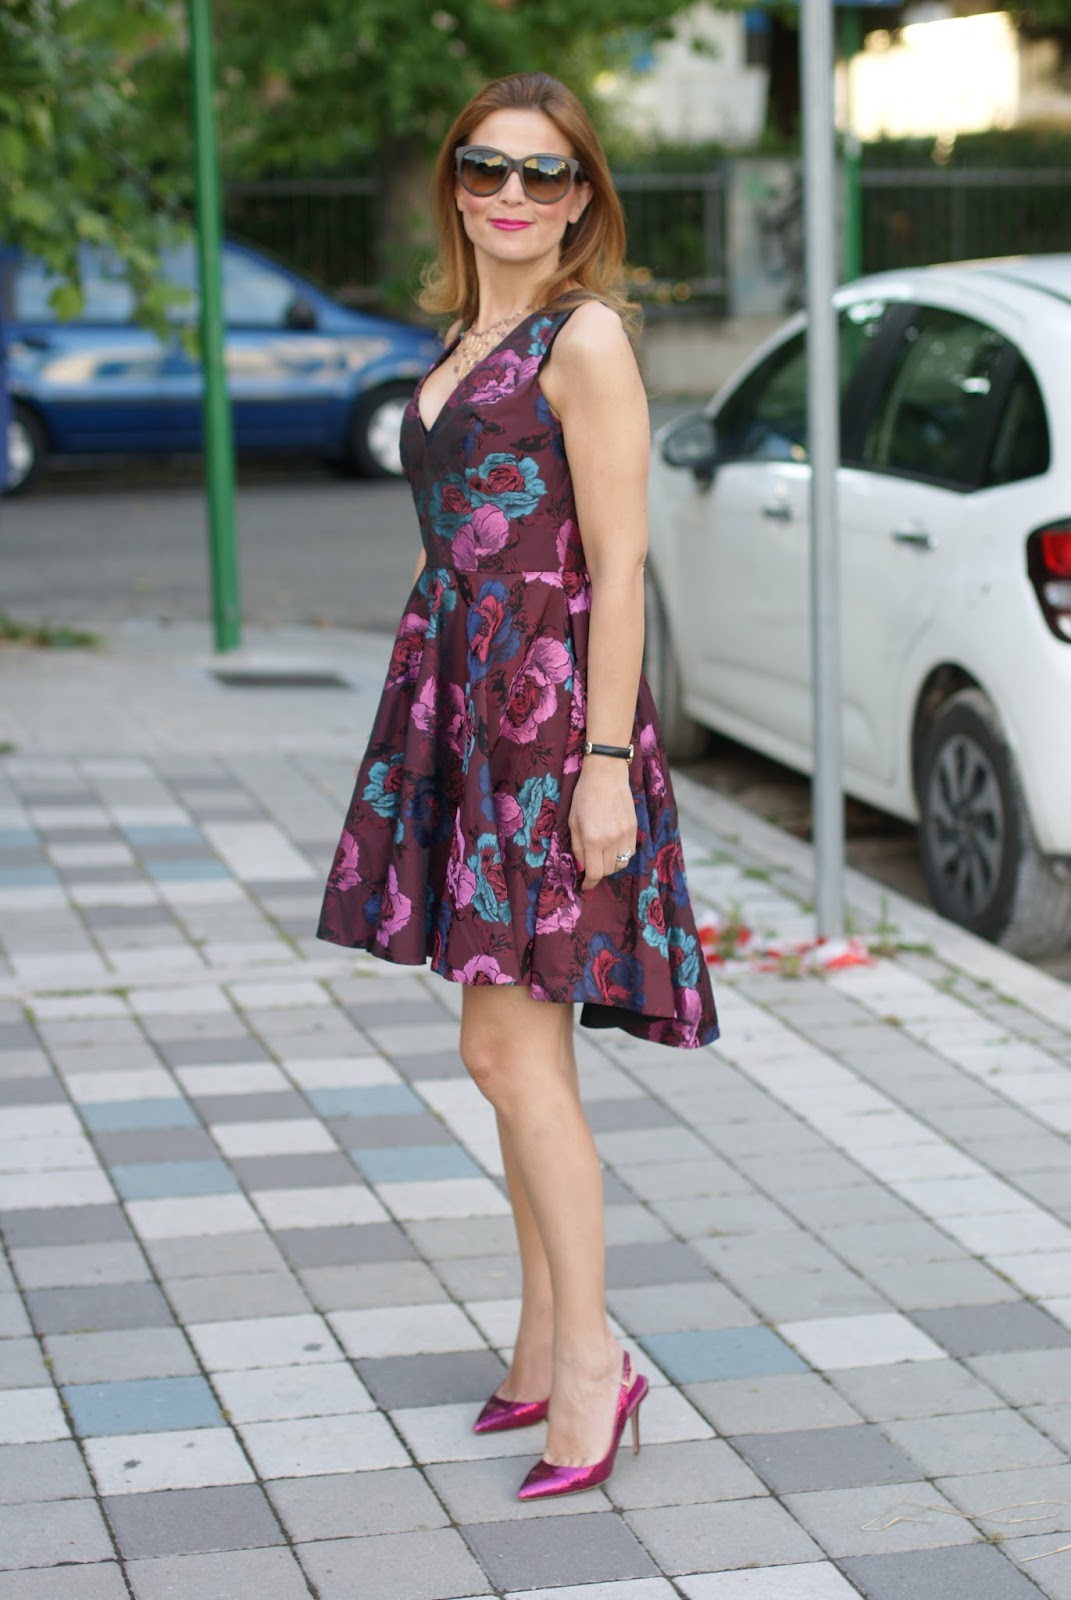 Asos floral jacquard dress, high low hem dress, skater dress and Le Silla heels on Fashion and Cookies fashion blog